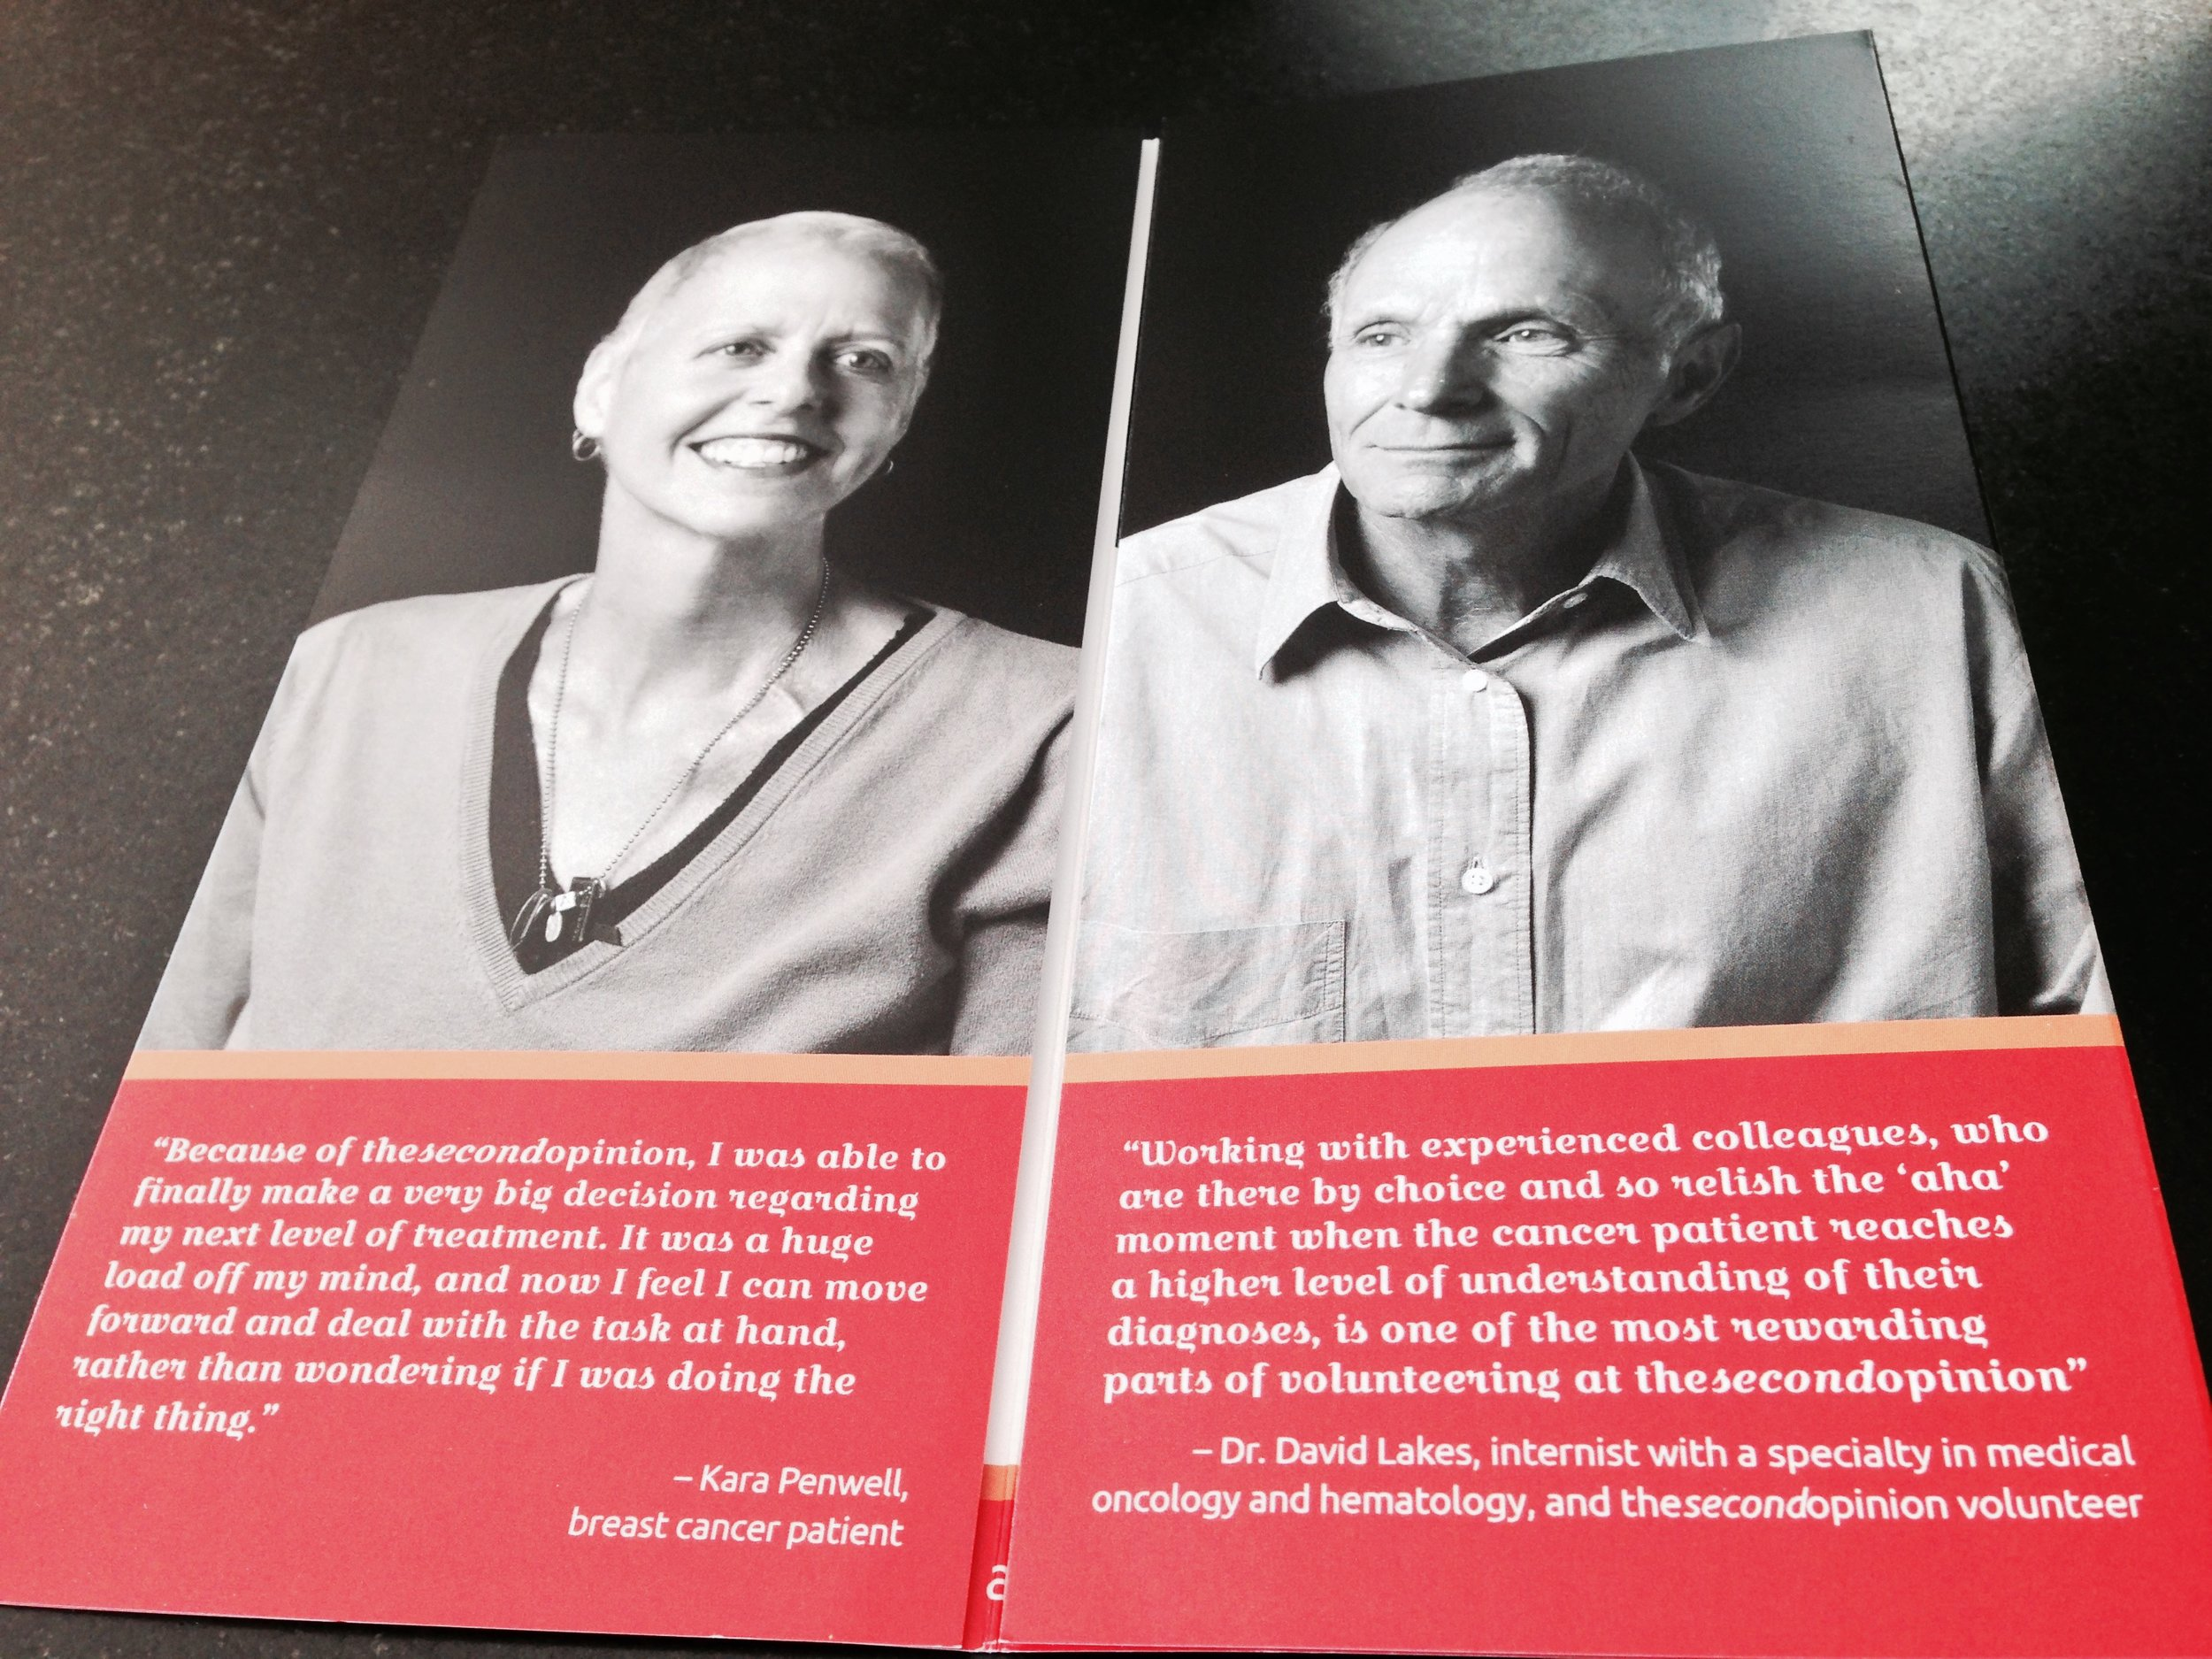 Here's a spread from their annual report we created along with portraits and video (by Dave Papas).